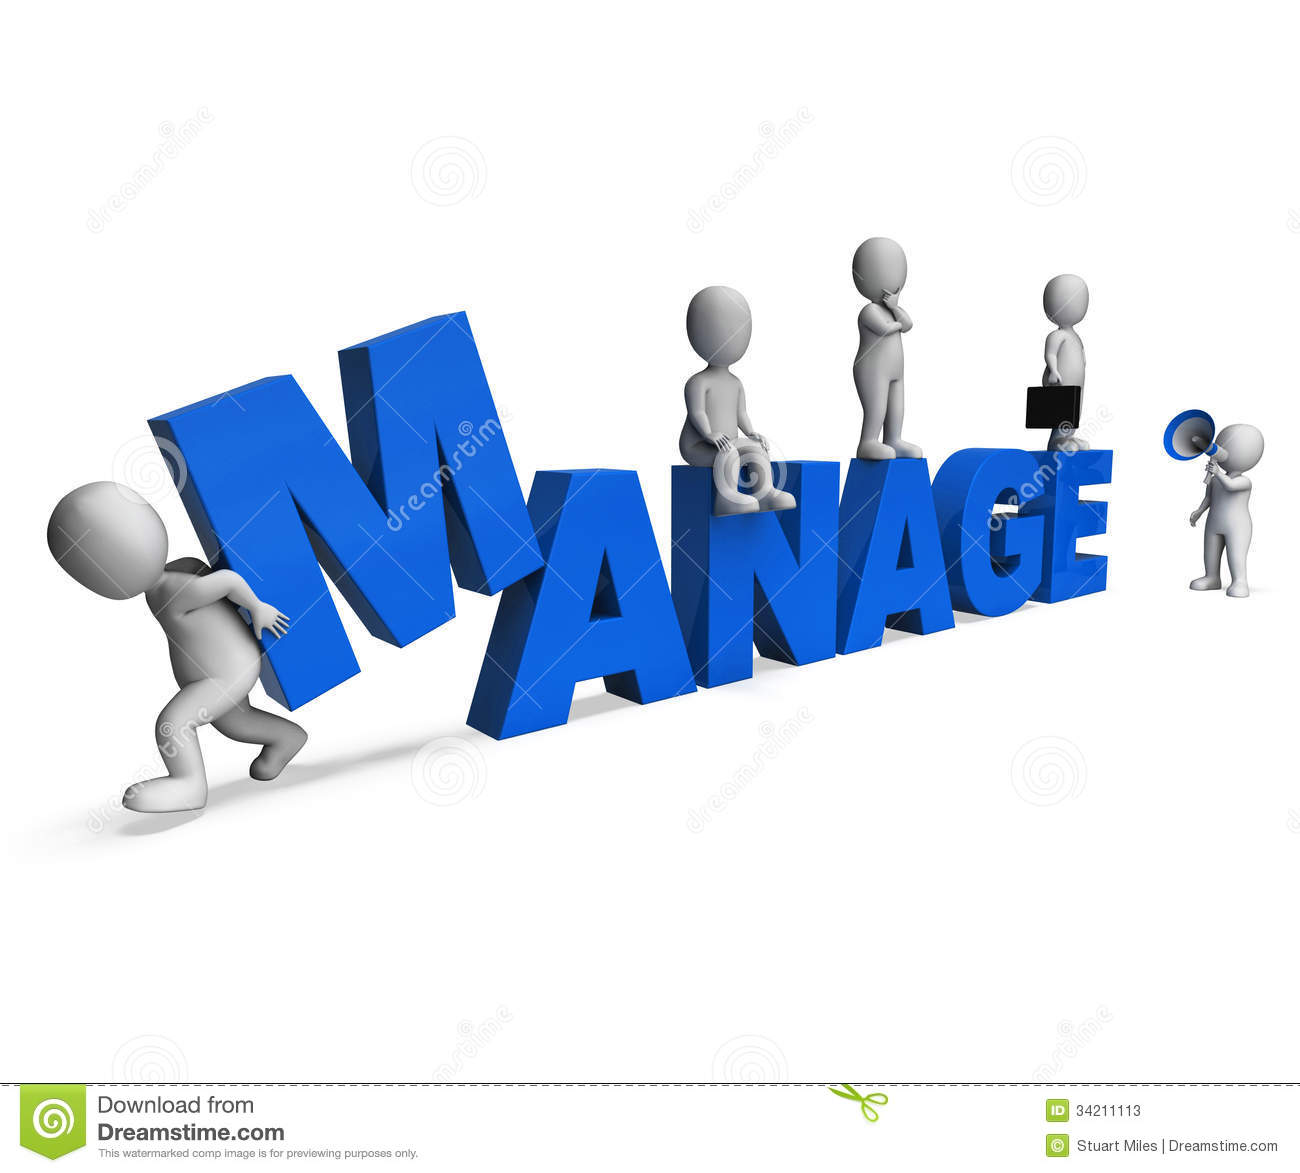 Manage Characters Shows Managing Management And Leadership Stock ...